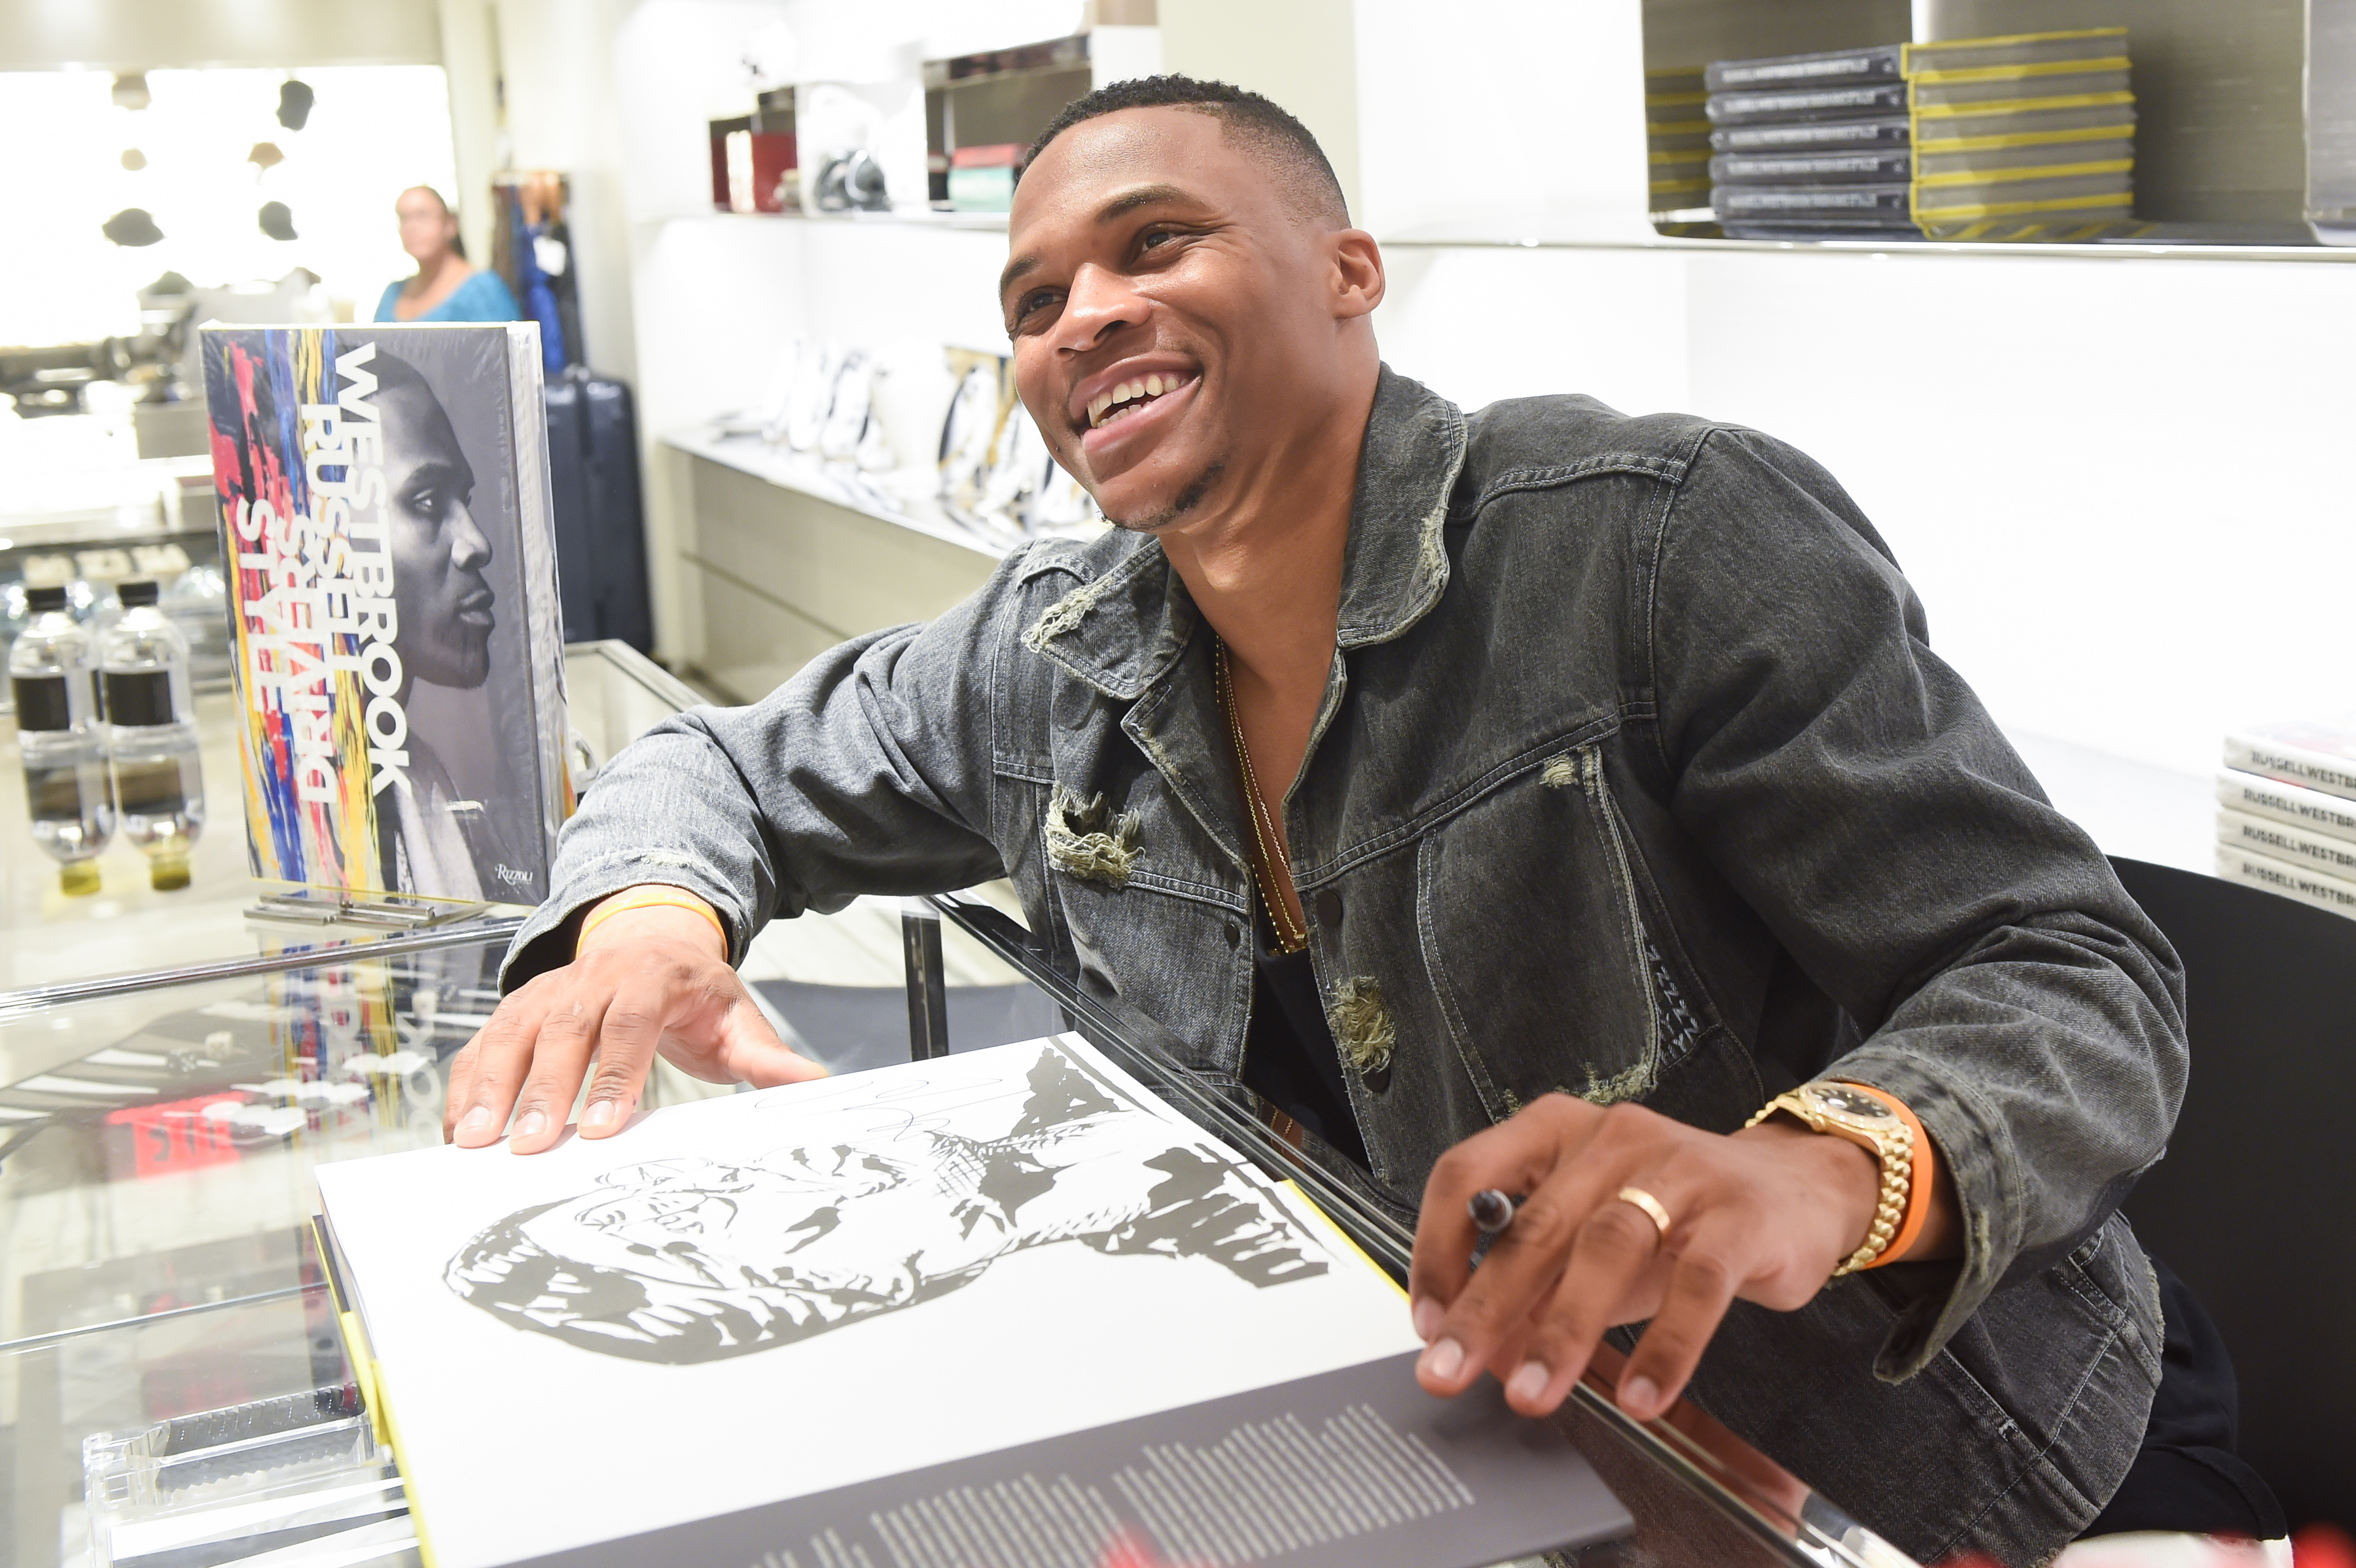 Russell Westbrook signs his new book during an event at Barneys.